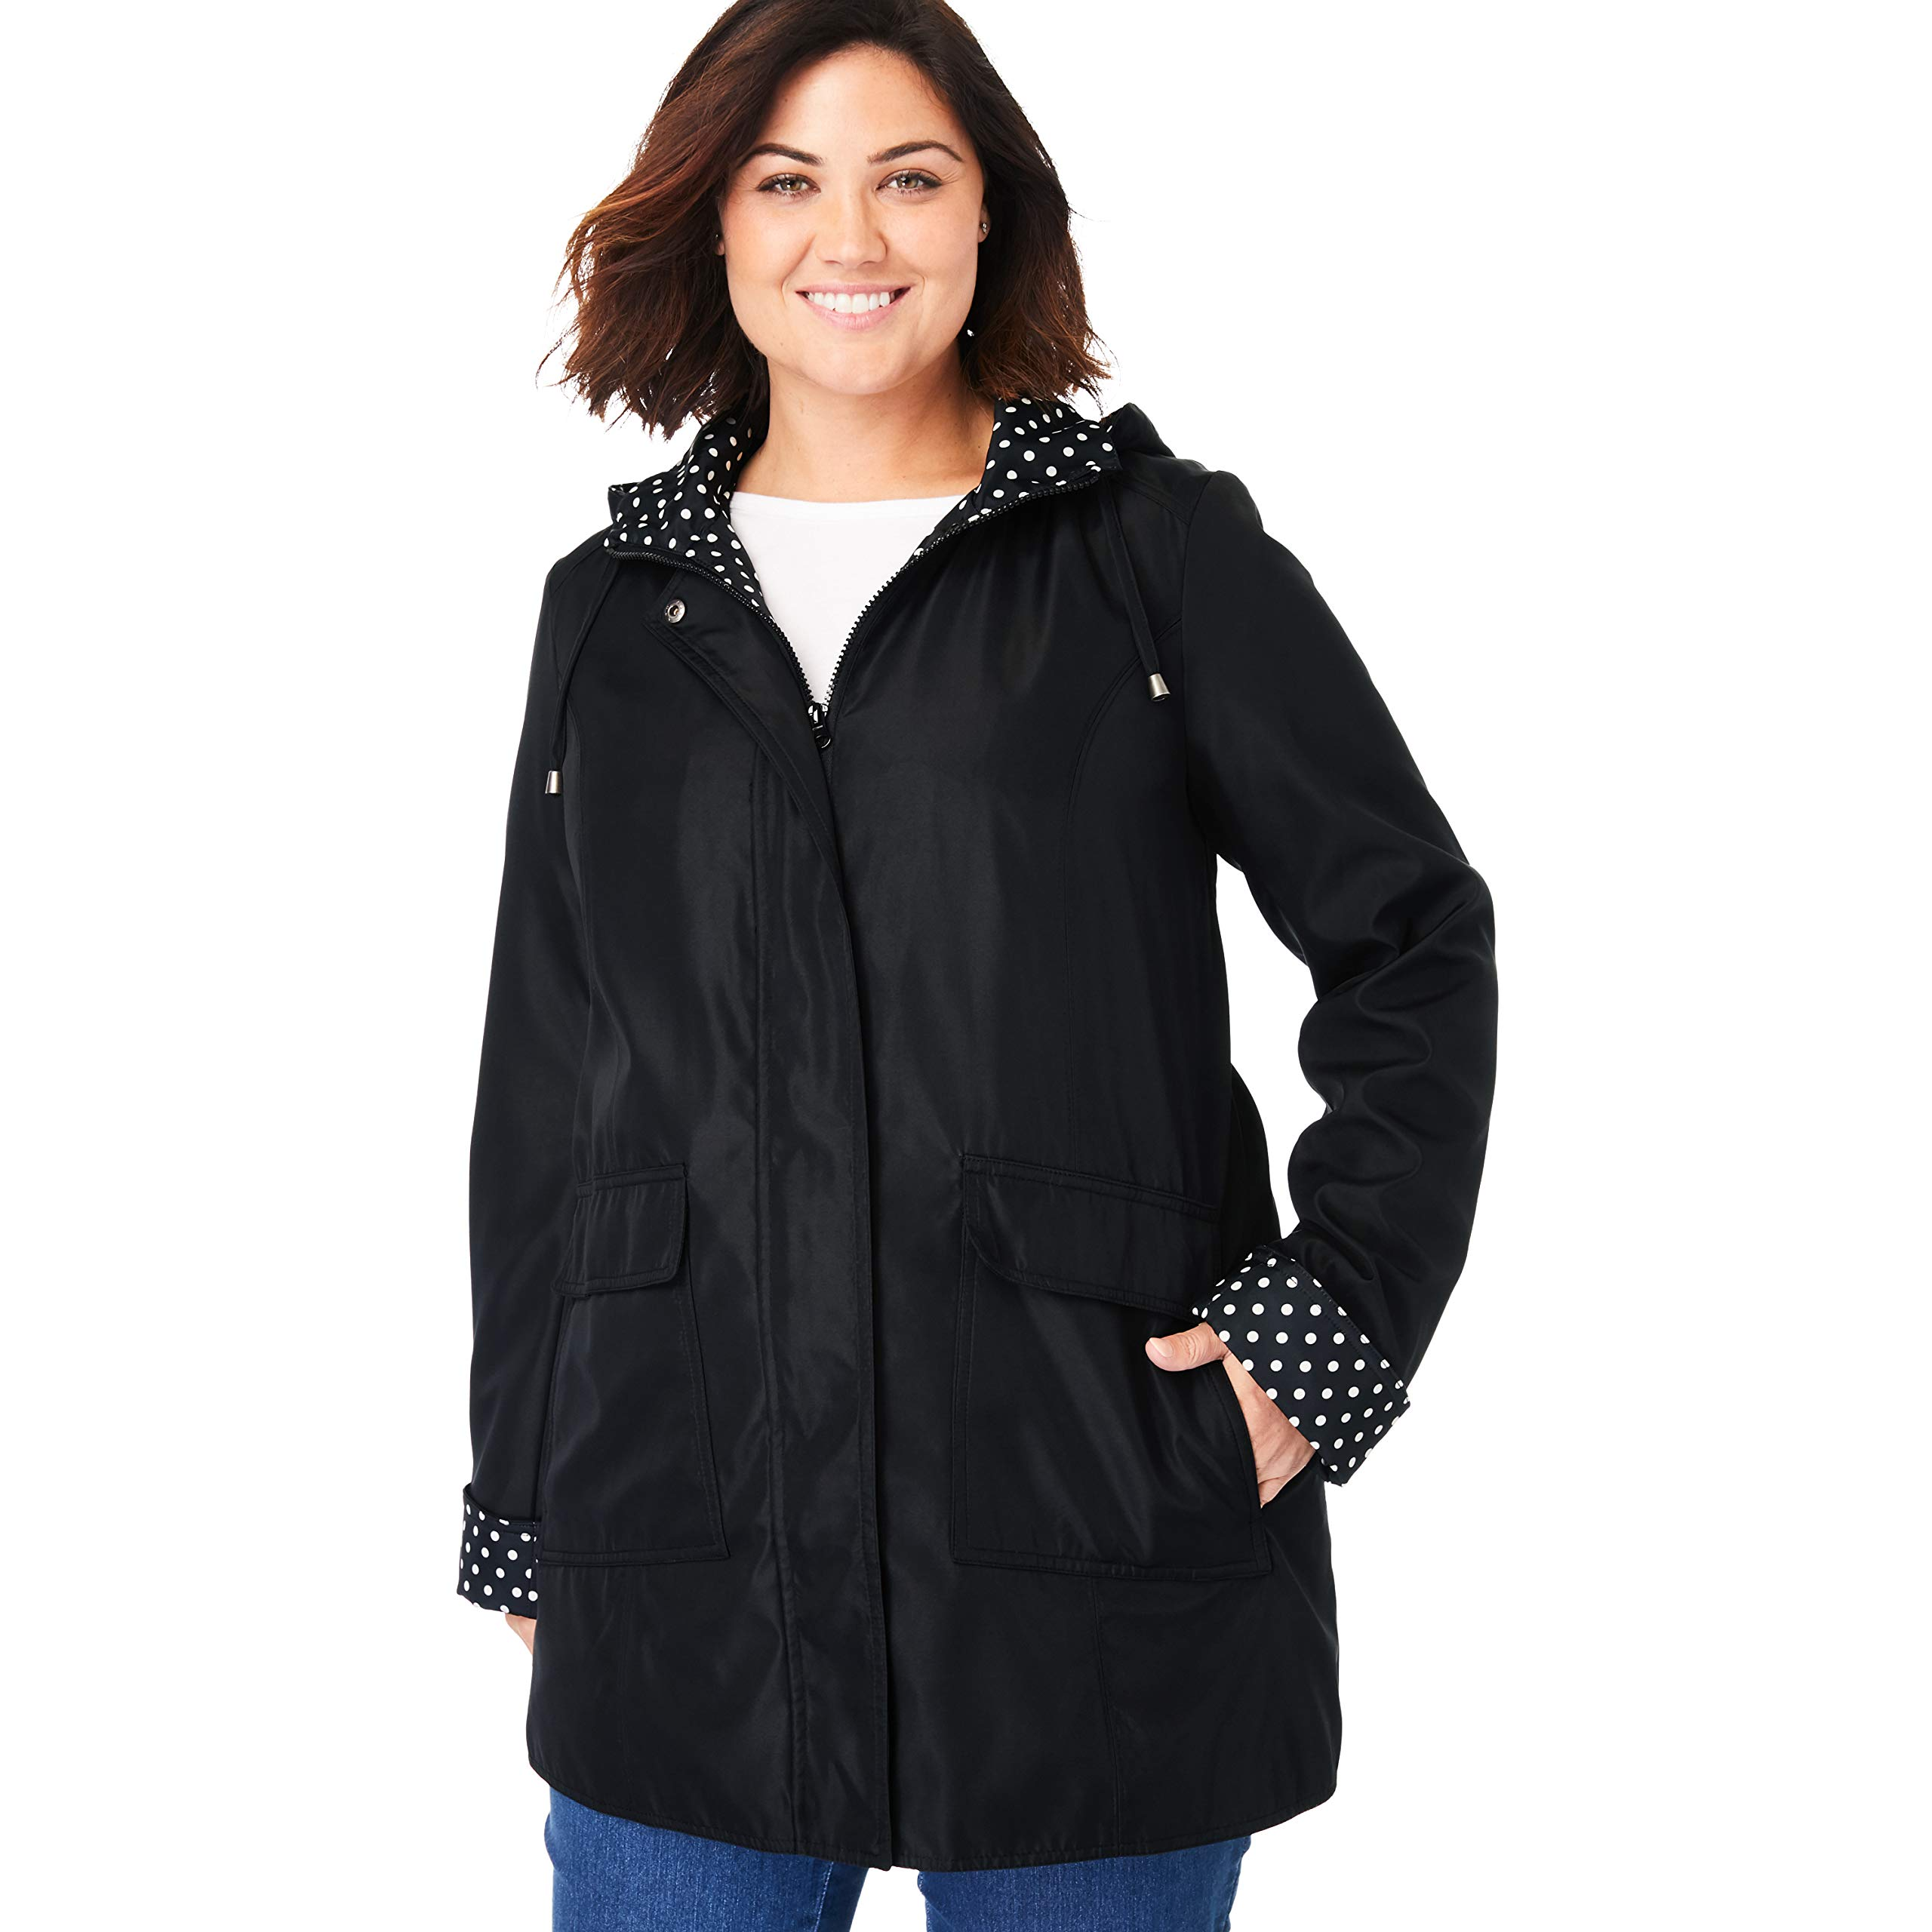 Woman Within Women's Plus Size Raincoat in New Short Length with Fun Dot Trim - Black, 22 W by Woman Within